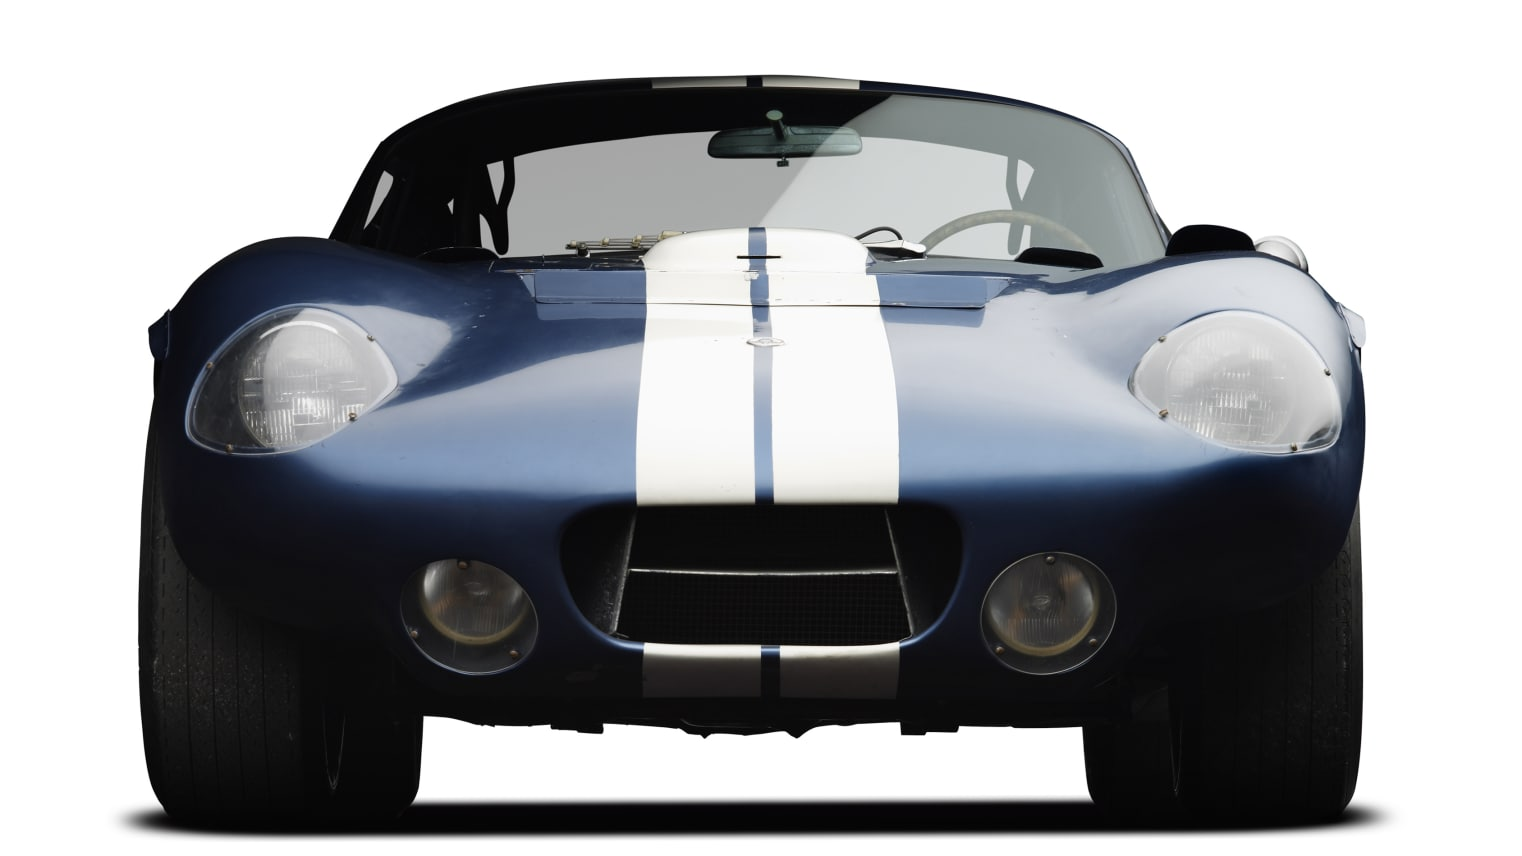 http://high-street.org/uploads/157_1965-shelby-daytona-coupe-prototype-front-e.jpg